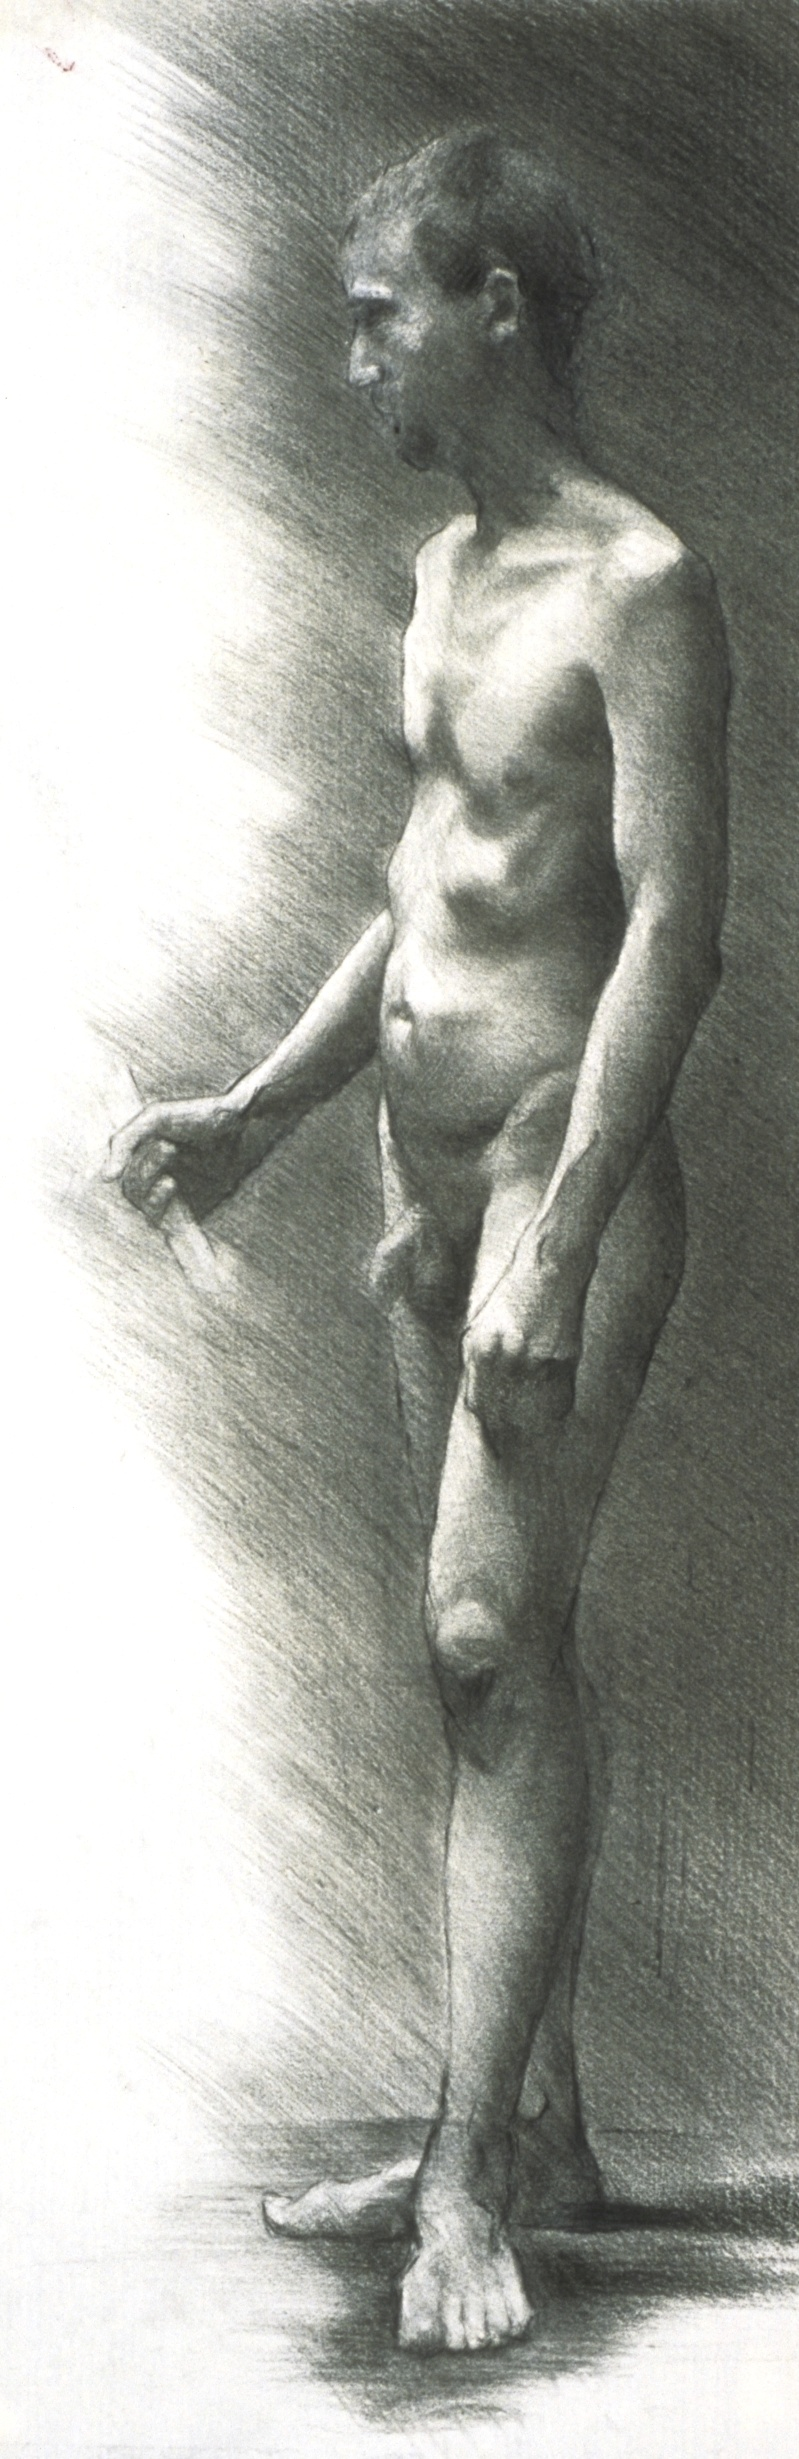 Male Nude, side frontal